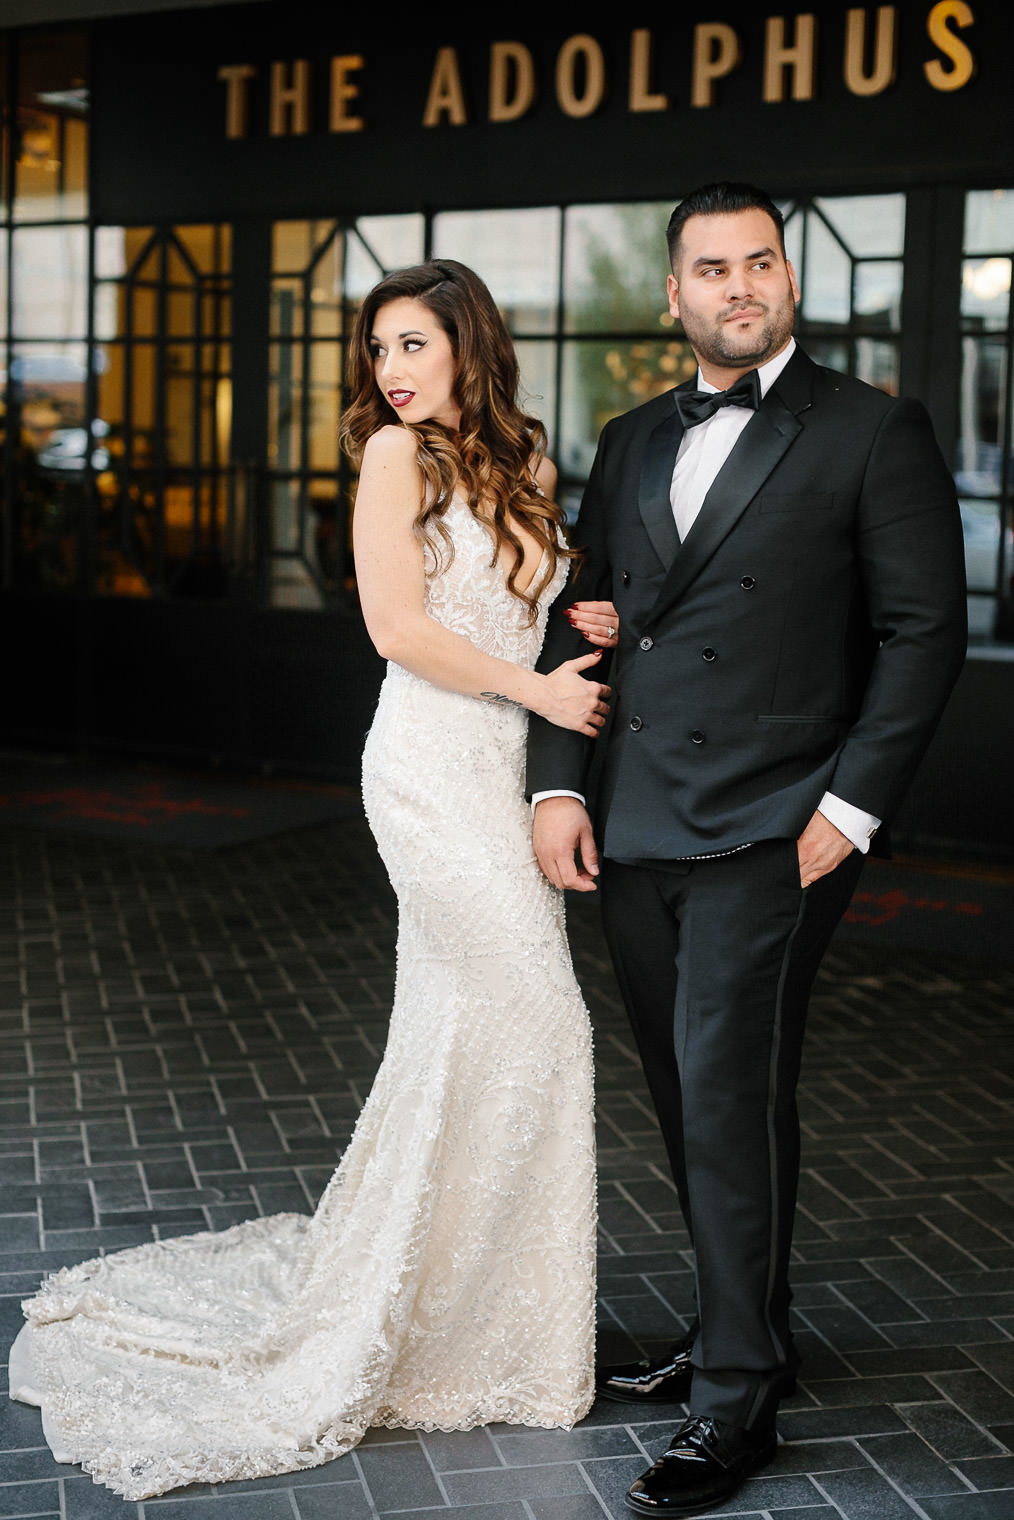 bride and groom standing outside Adolphus hotel entrance